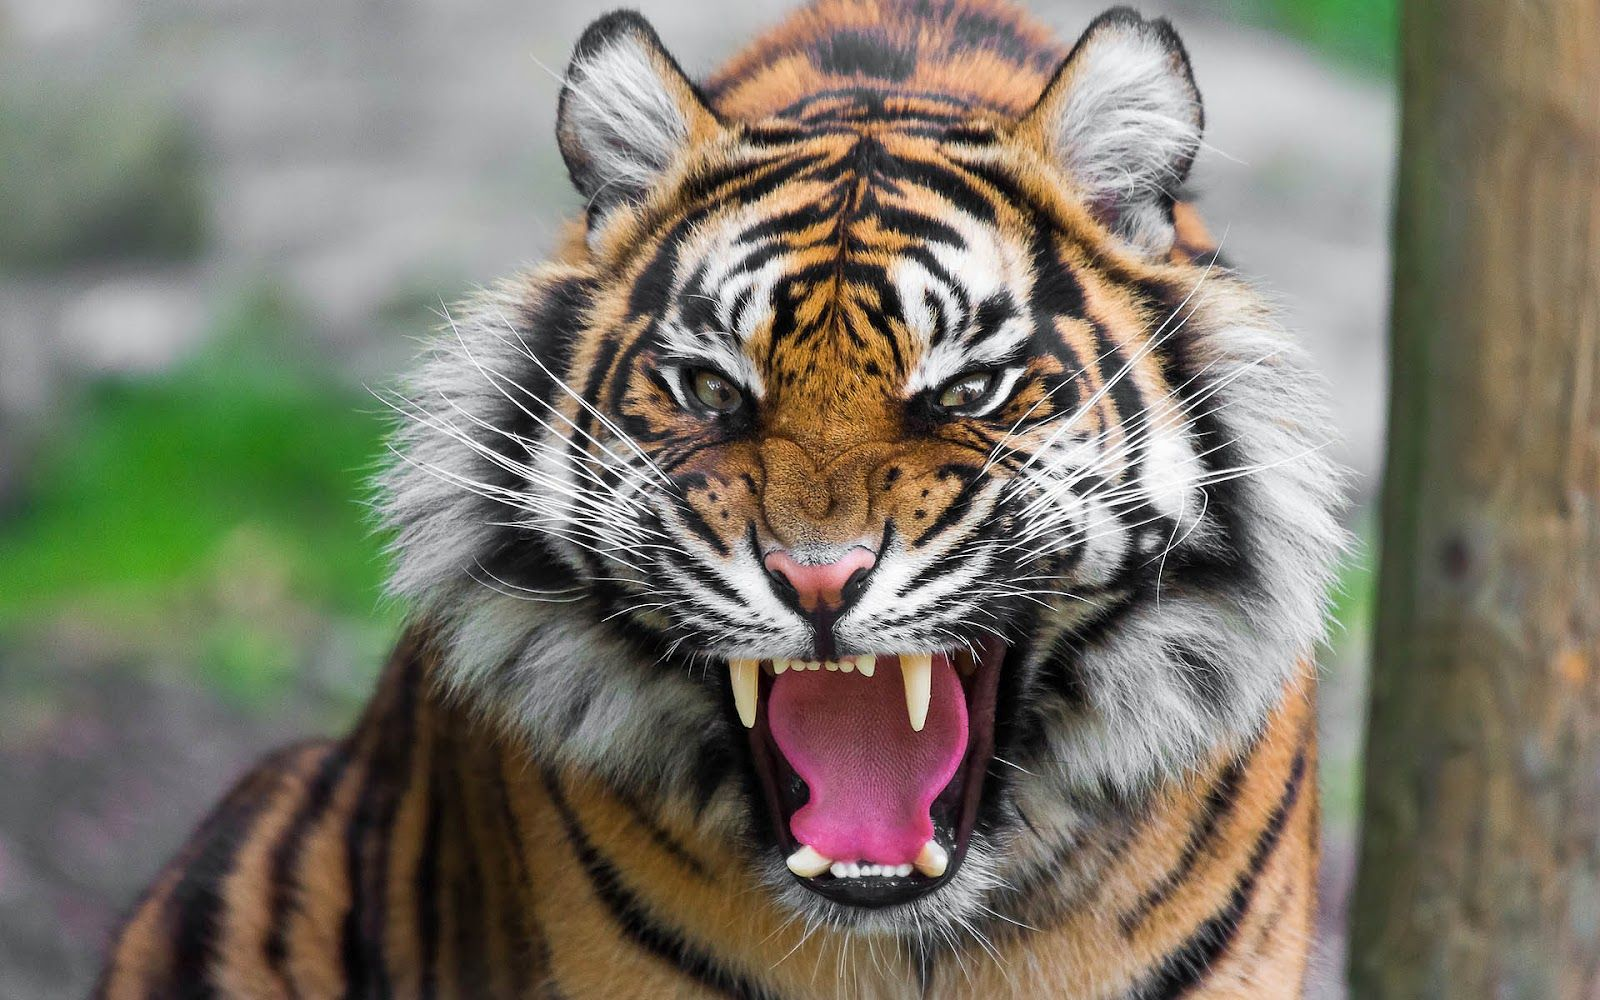 Angry Tiger Face Big Cats Tiger Roaring Tiger Pictures Tiger